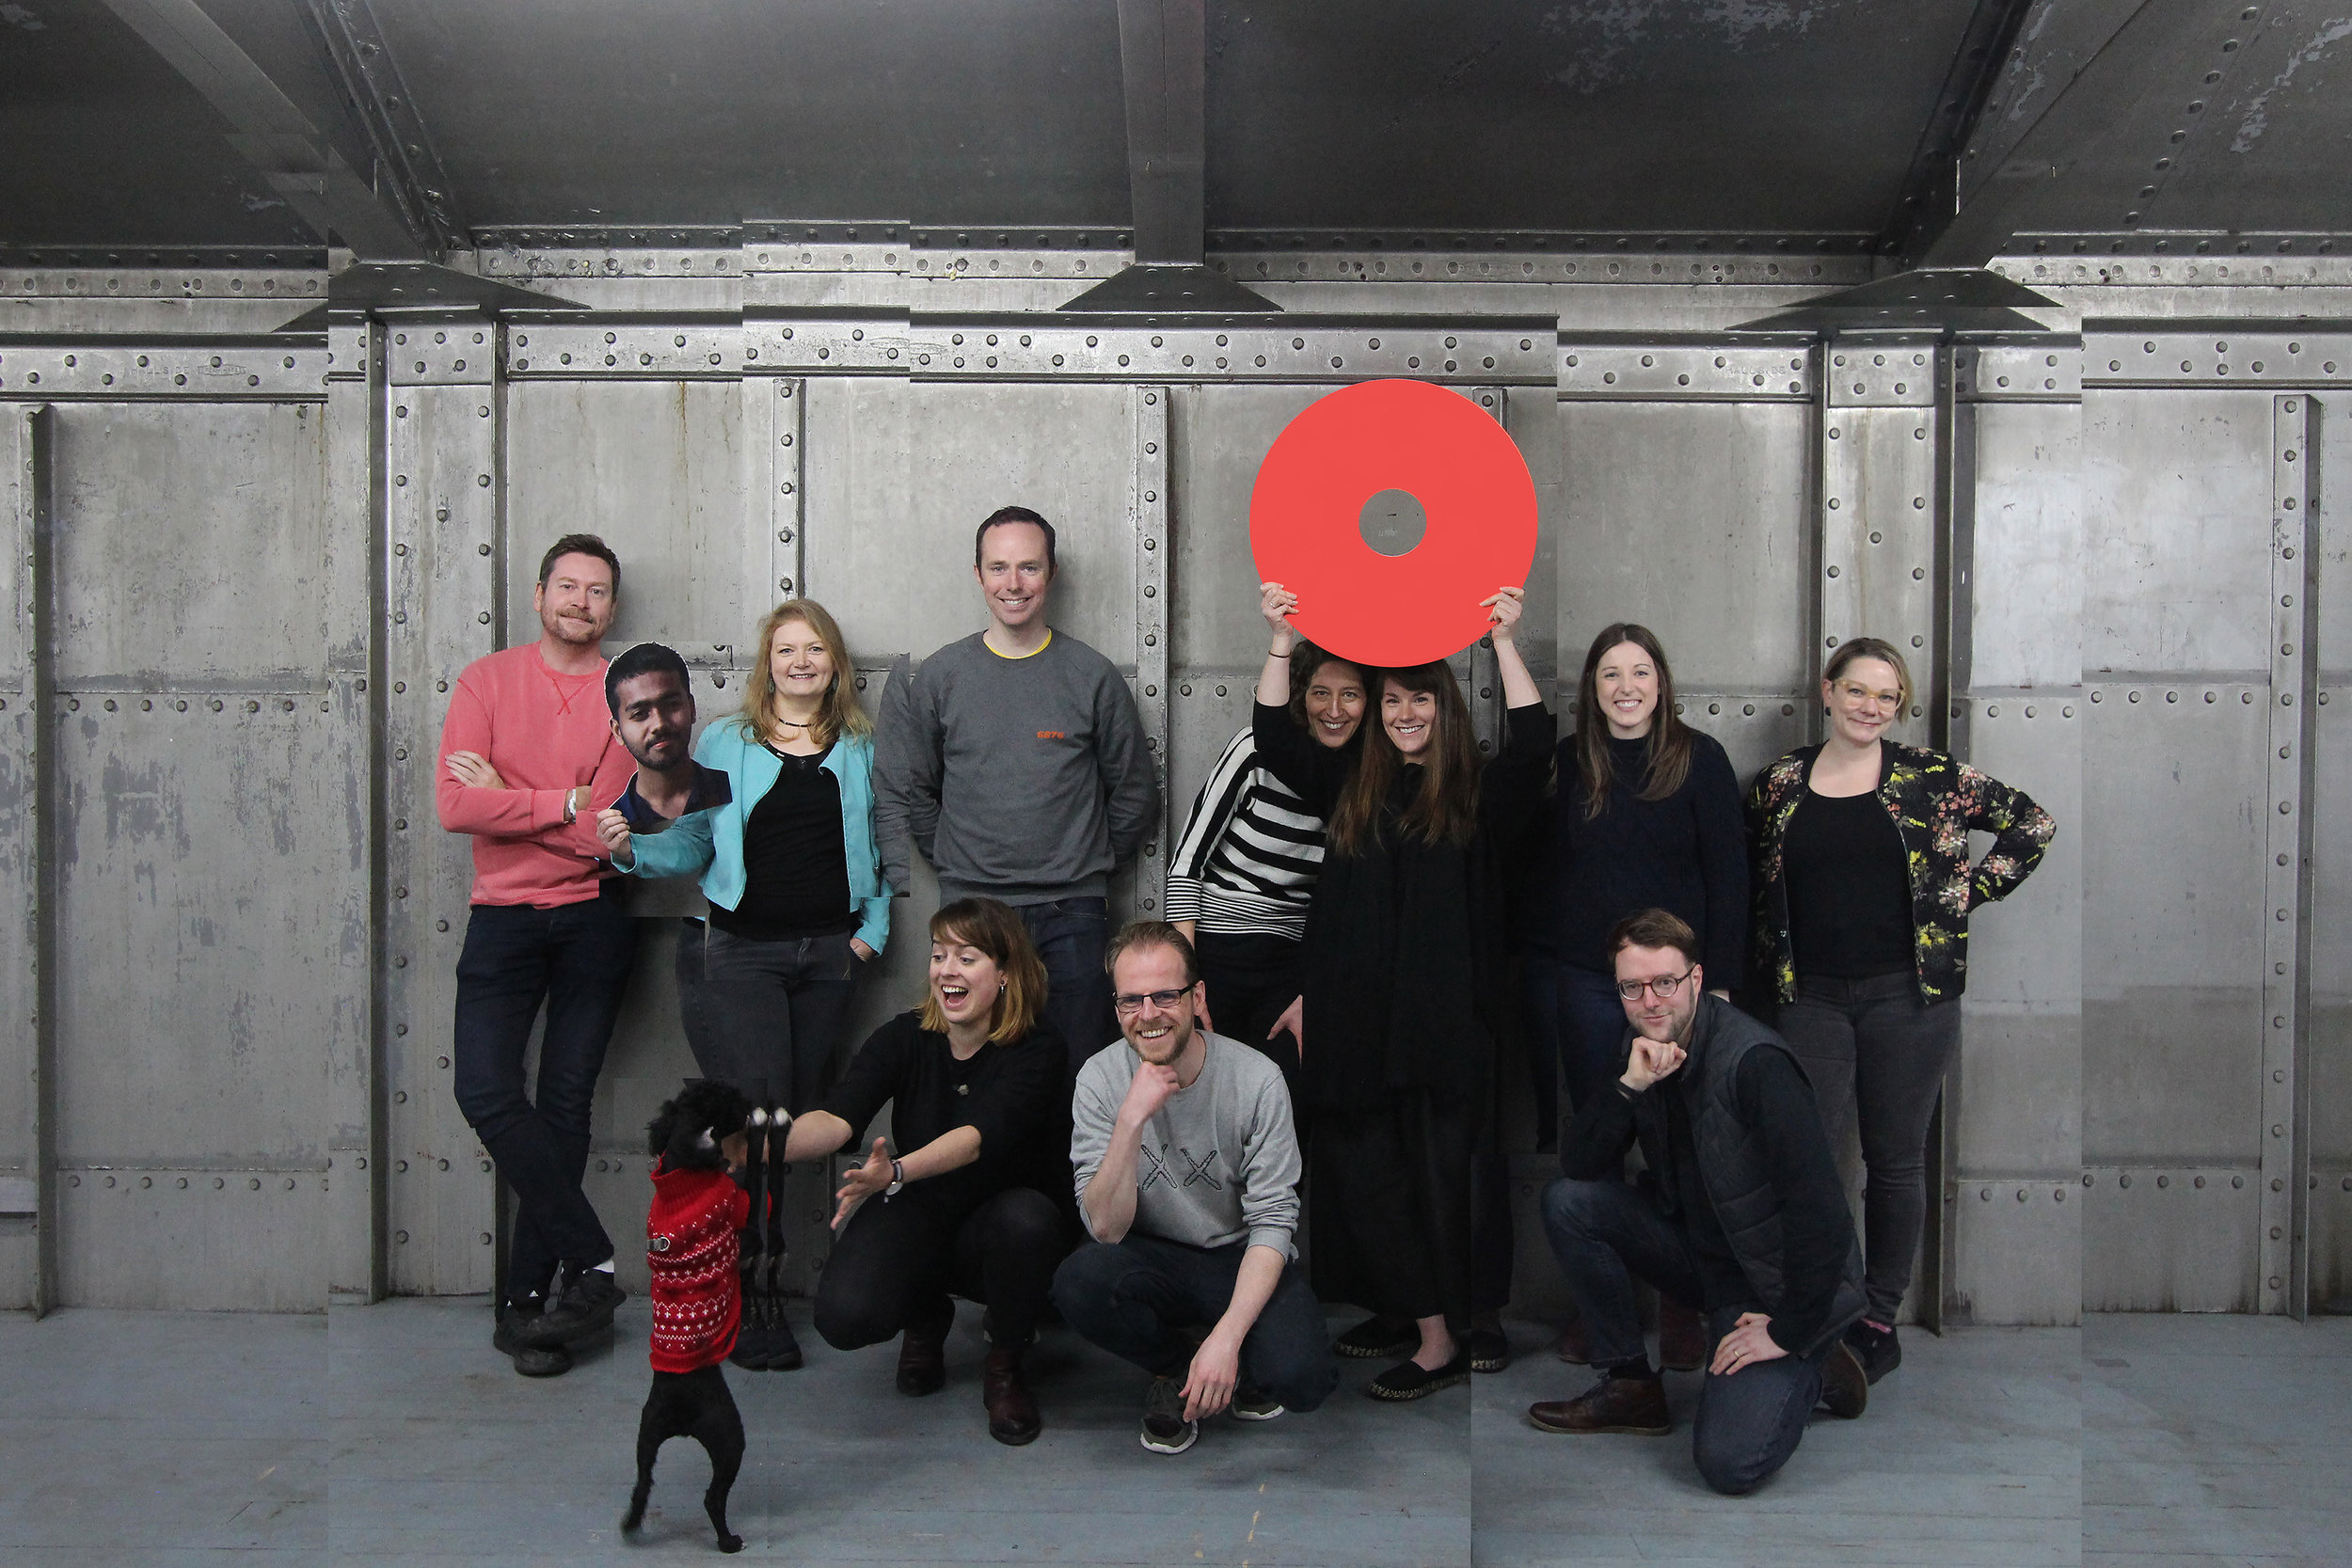 The Architecture Fringe 2019 production team: [L-R] Andy Summers, Dhamintha Wickremasinghe, Obi, Liane Bauer, Rūta Turčinavičiūtė, Neil McGuire, Chris Dobson, Marion Preez, Eilidh Izat, Olivia Turner, Sam Comrie and Leah Lockhart. Photo: Robb Mcrae